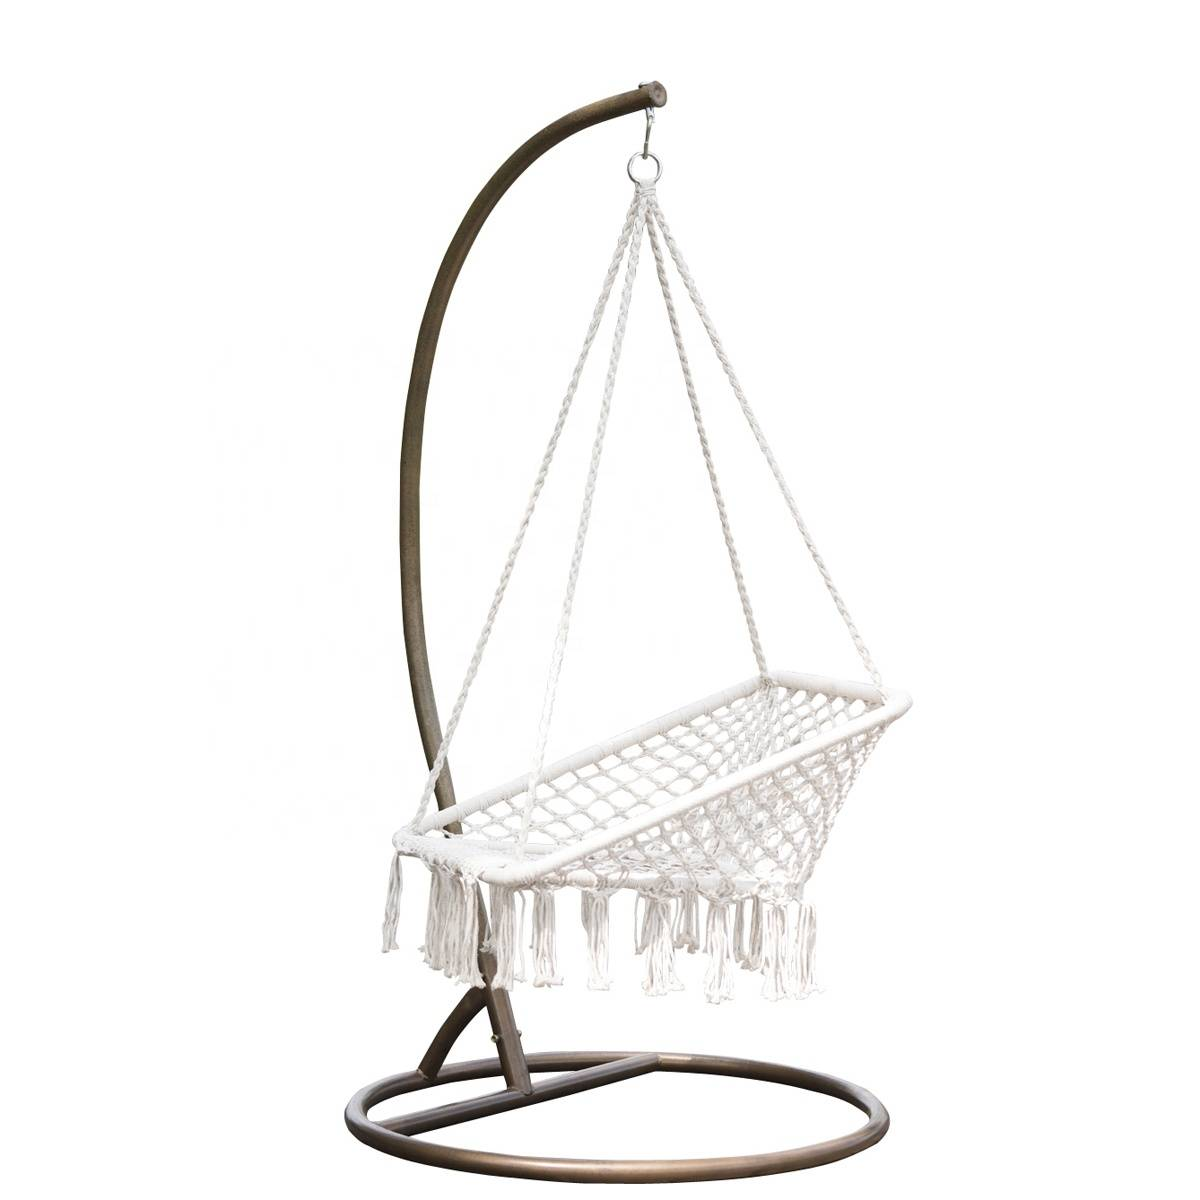 Hanging Square  Hammock Swing Chair, Outdoor Garden Rope Swing Chair